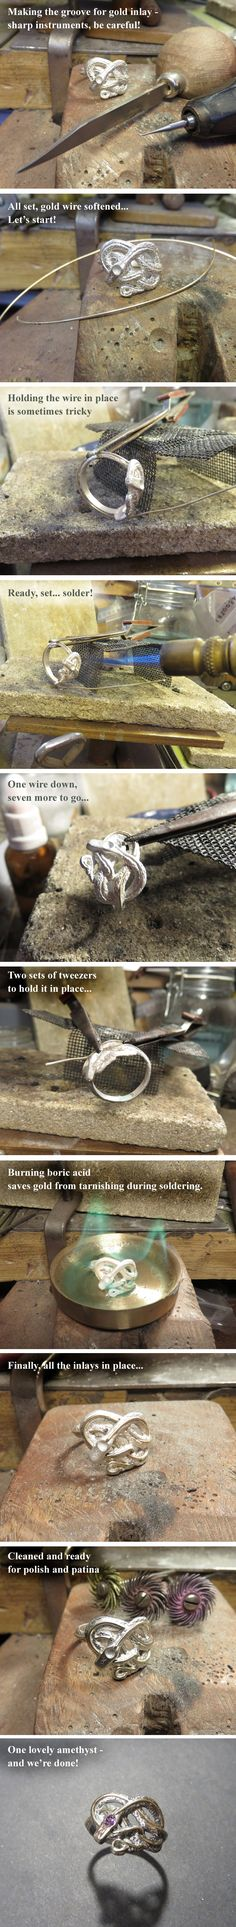 Snake Ring Inlay - in Progress by GeshaR on DeviantArt See the finished ring here: https://www.etsy.com/il-en/listing/269142106/knotted-snake-ring-sterling-silver-snake?ref=listings_manager_grid  Without gold: https://www.etsy.com/il-en/listing/269139372/sapphire-knotted-snake-ring-sterling?ga_search_query=snake&ref=shop_items_search_4